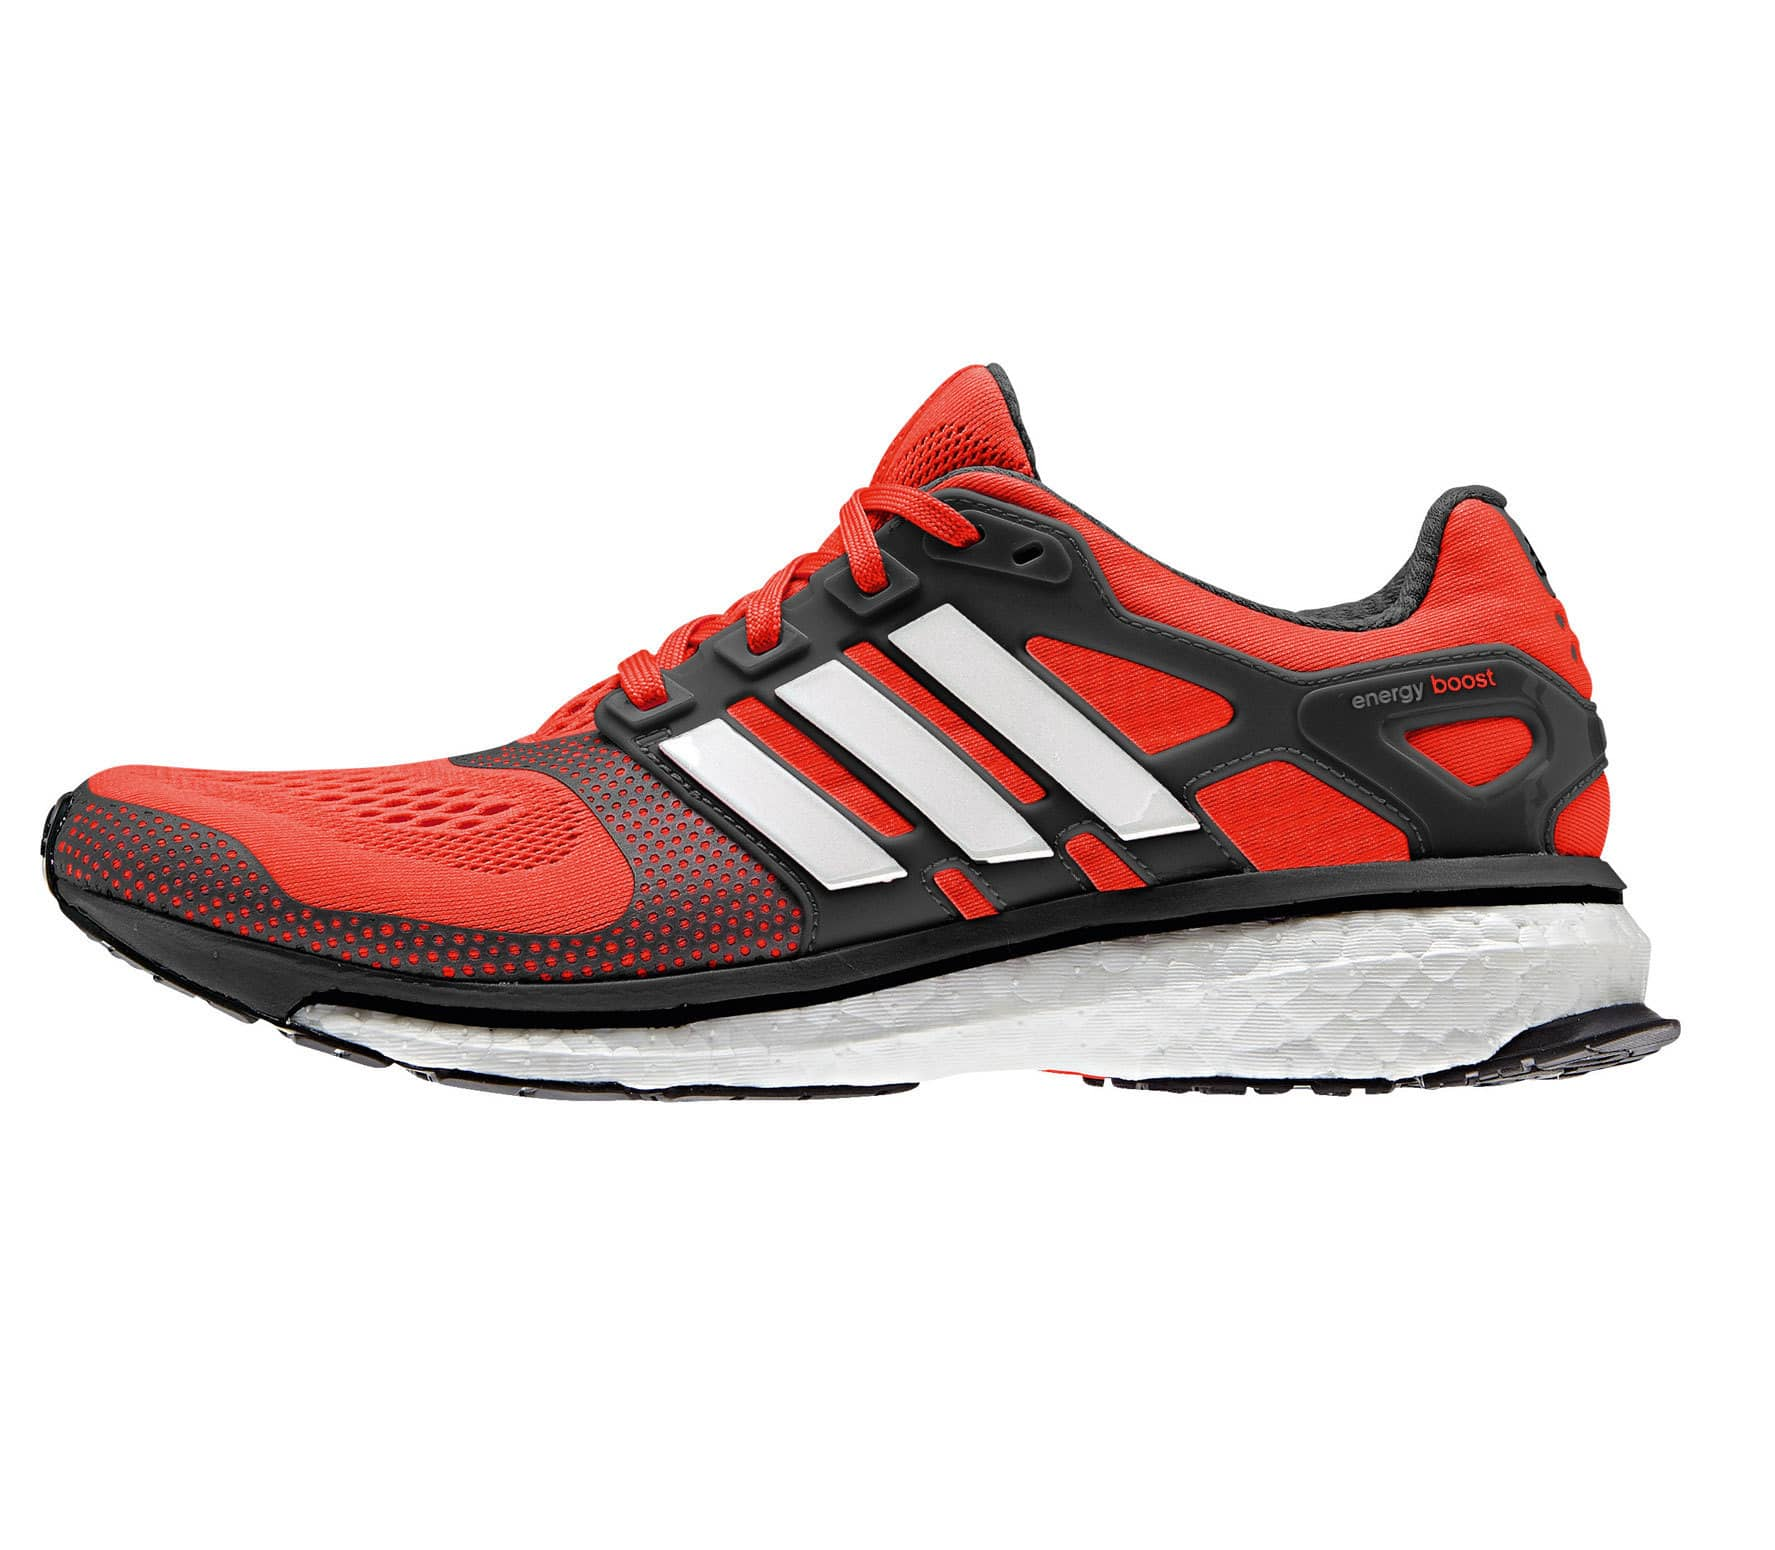 the best attitude 4c7b7 f2779 Adidas - Energy Boost 2 ESM men s running shoes (red black)